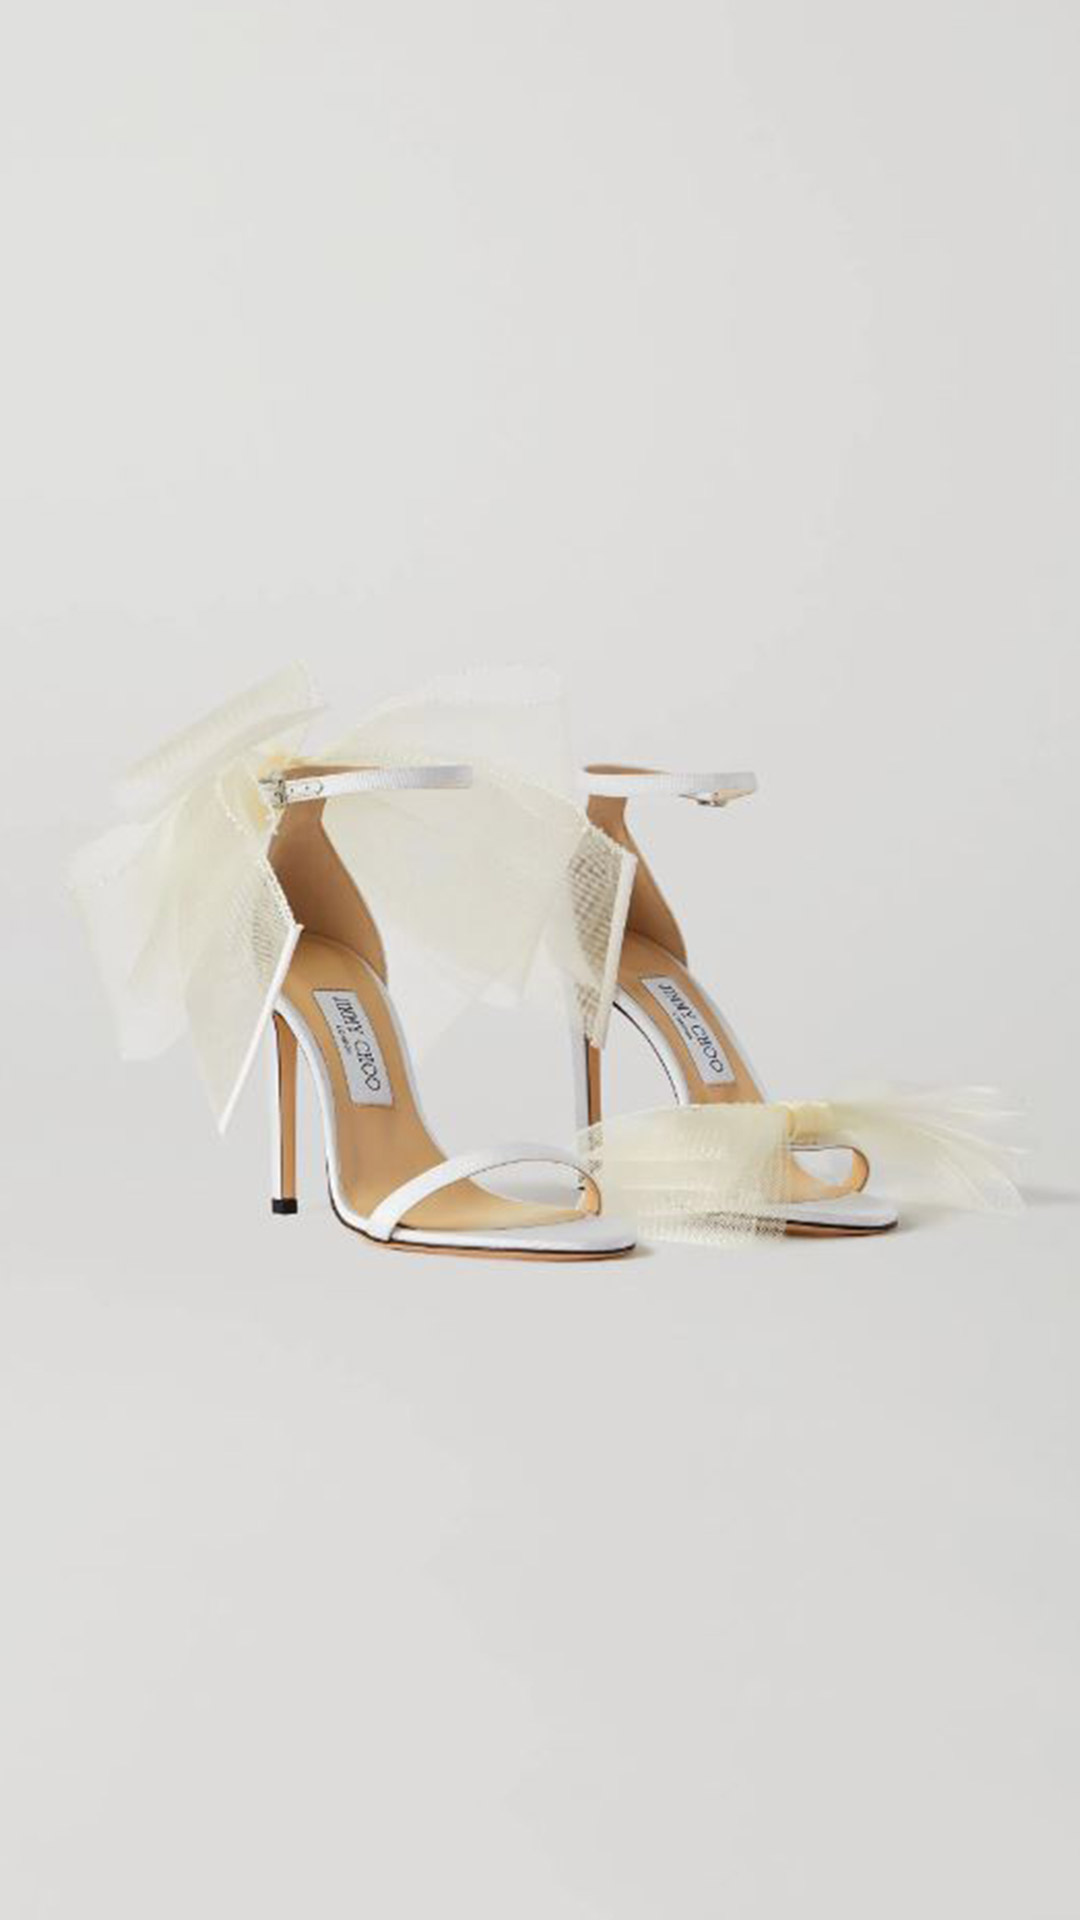 JIMMY CHOO Aveline Bow-Embellished Sandals